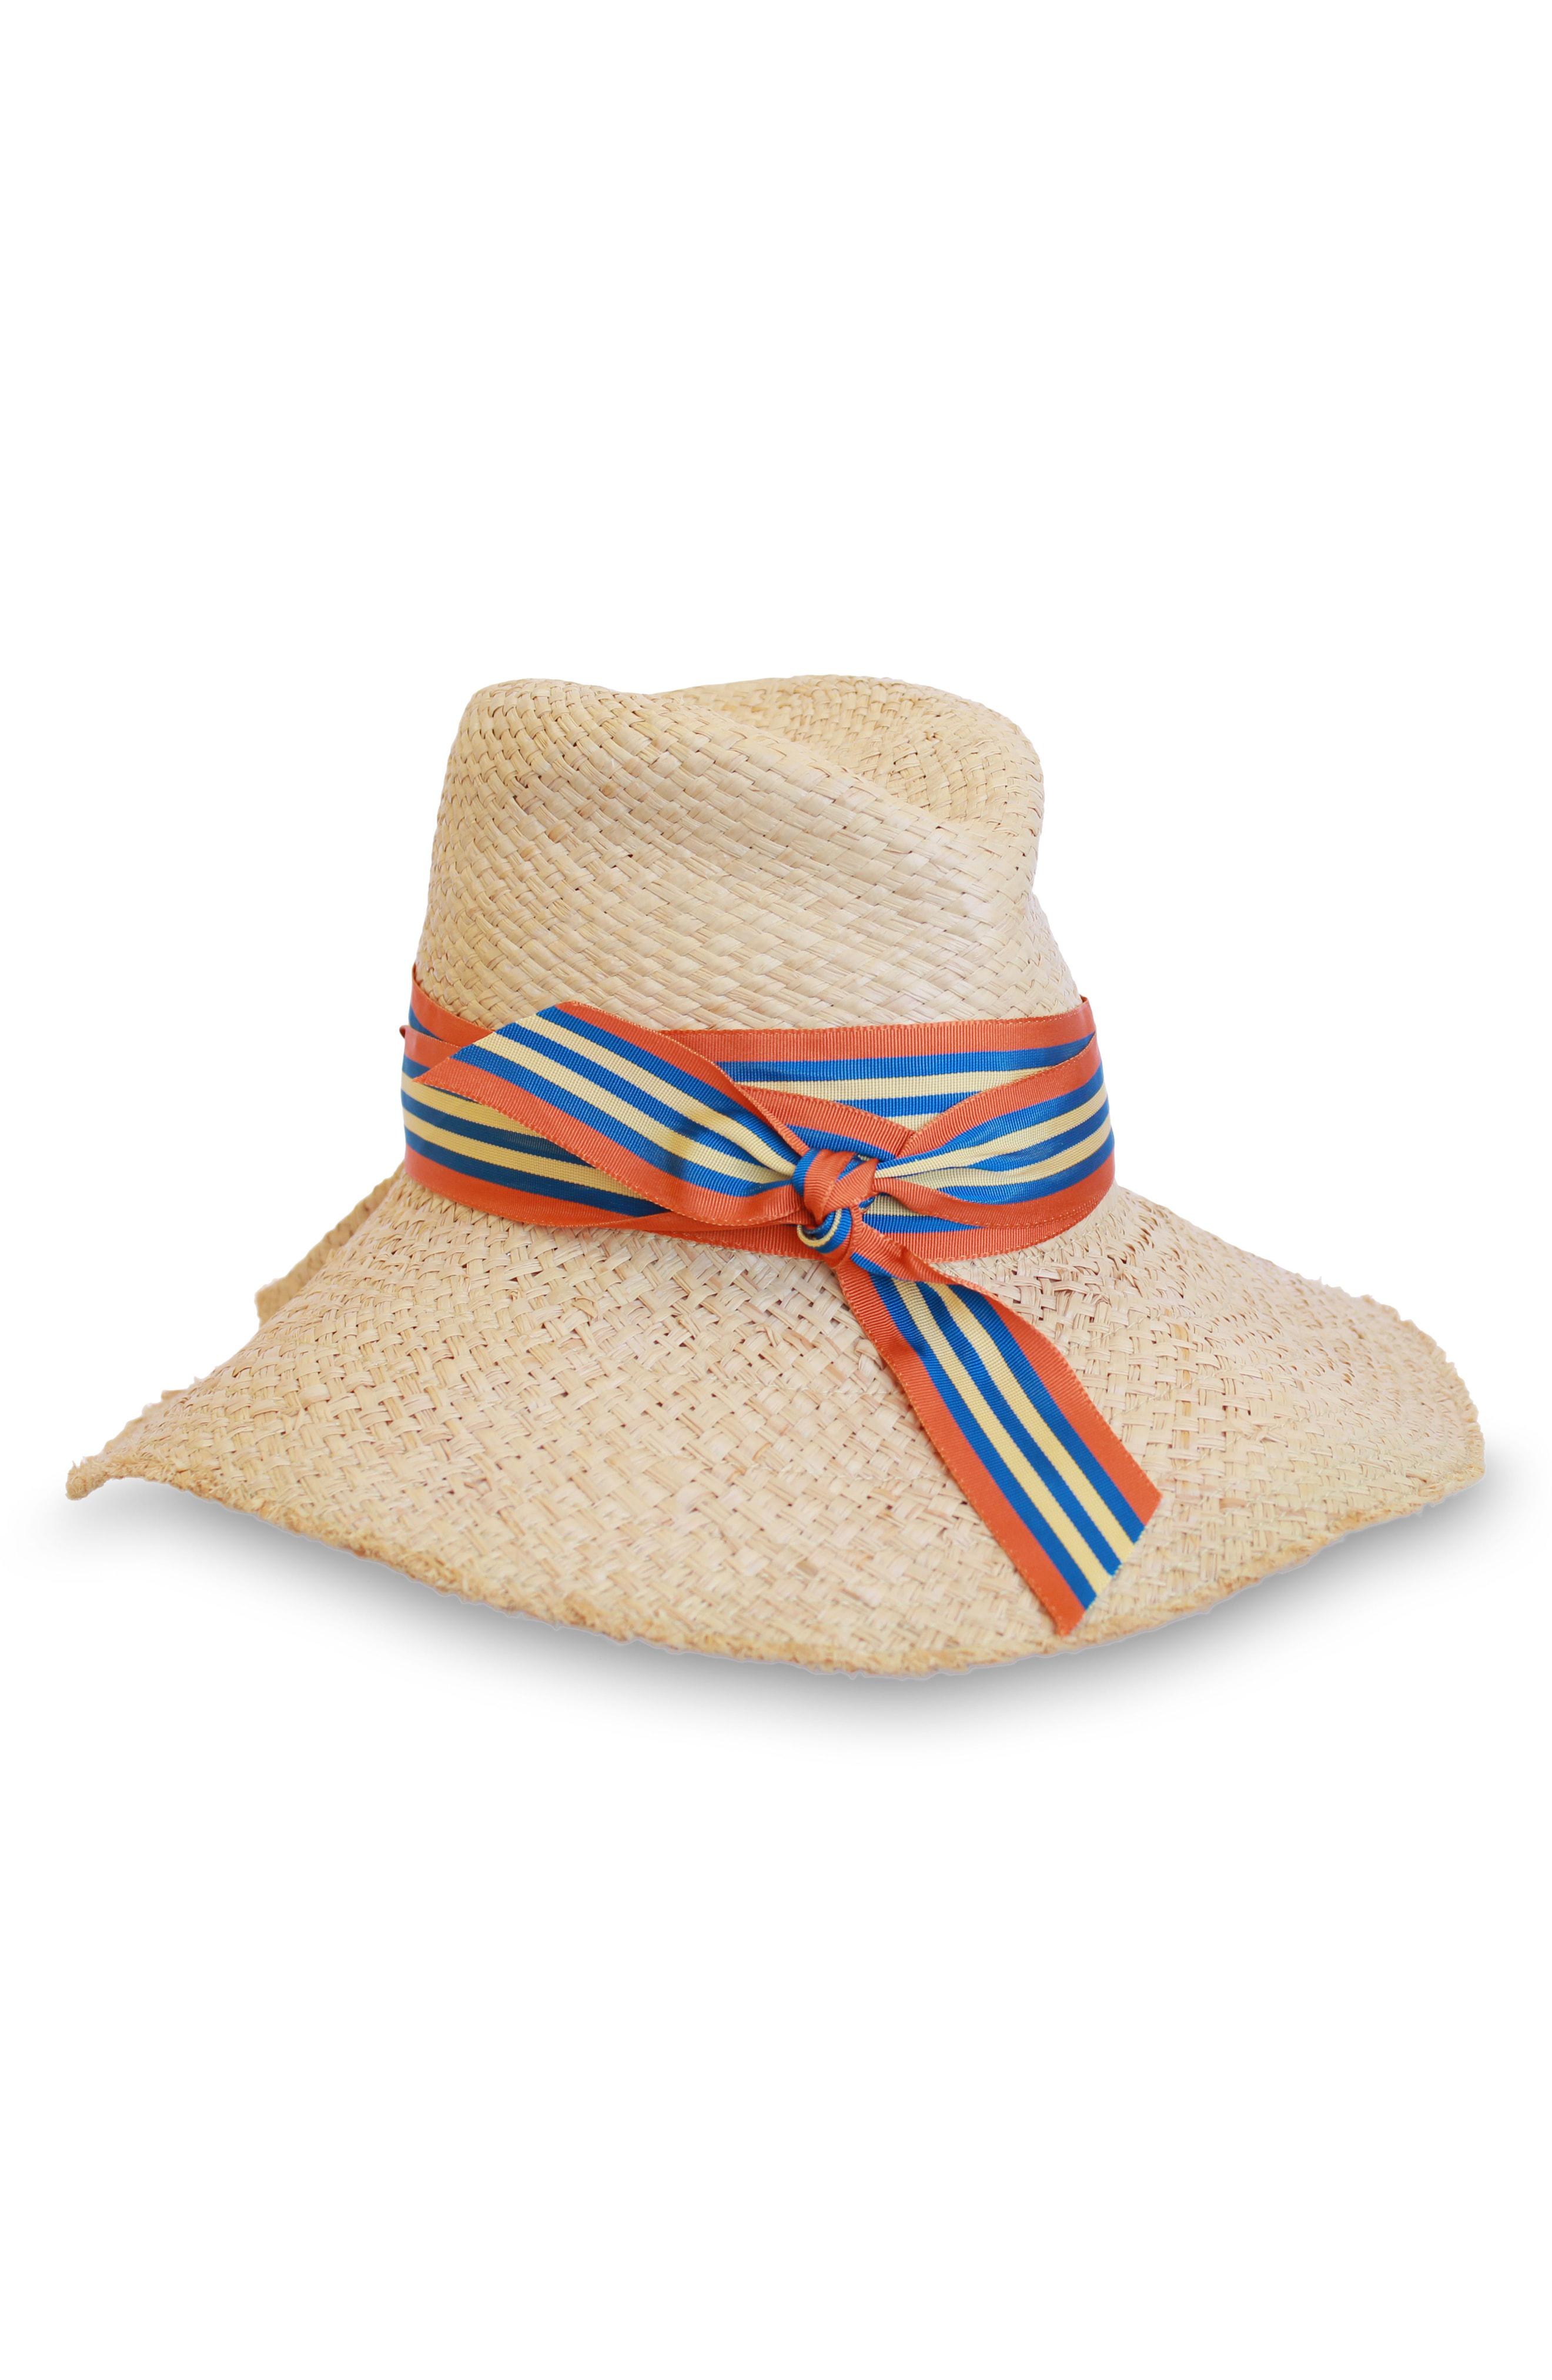 87677a088c8 Lyst - Lola Hats First Aid Striped Band Straw Hat